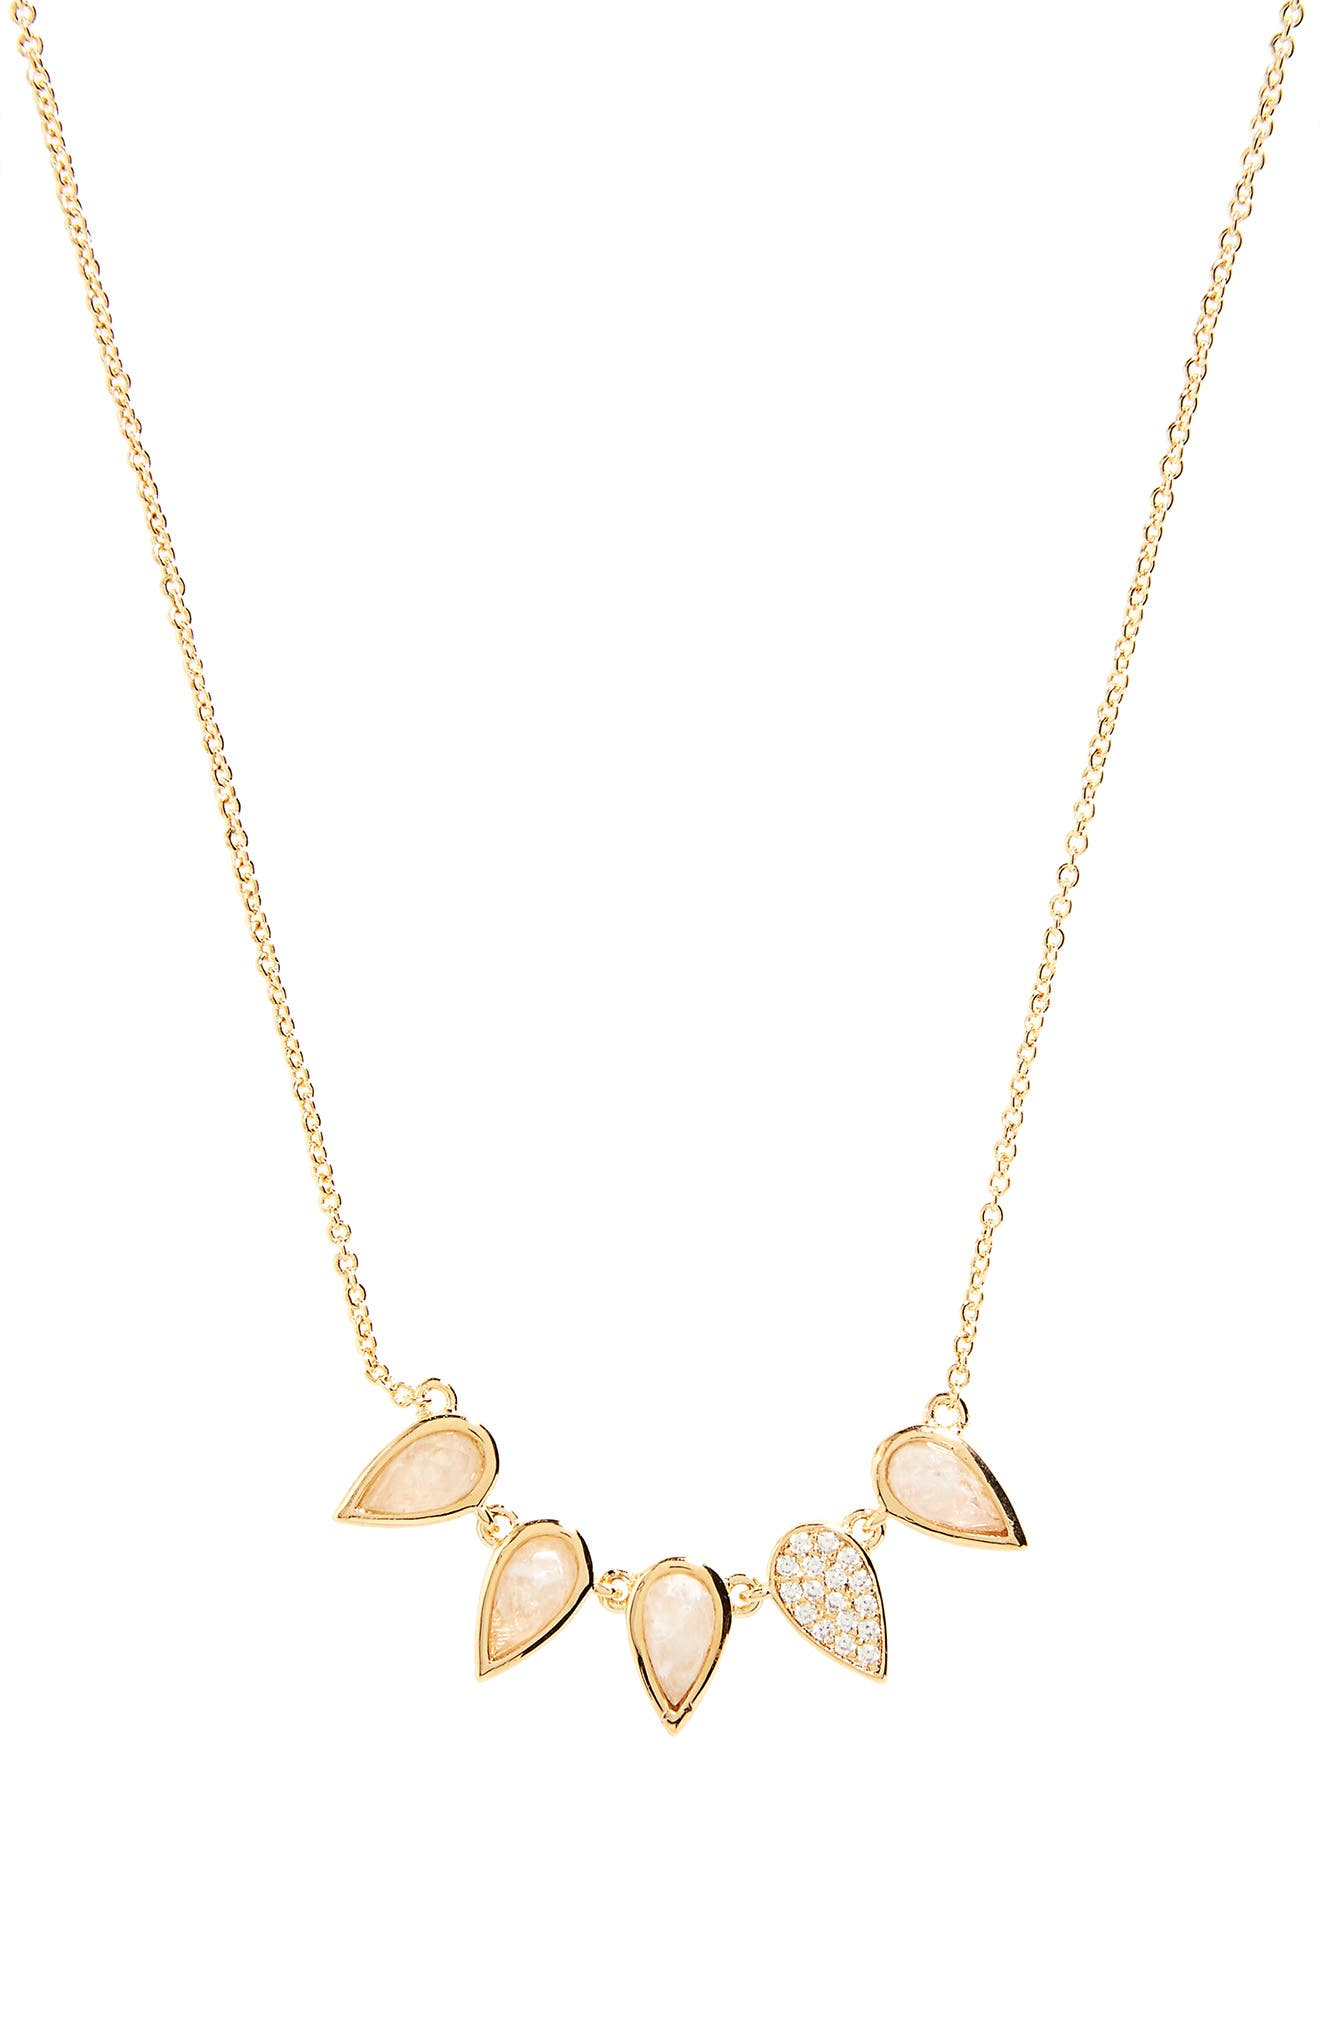 Multi Teardrop Frontal Necklace,                             Main thumbnail 1, color,                             710